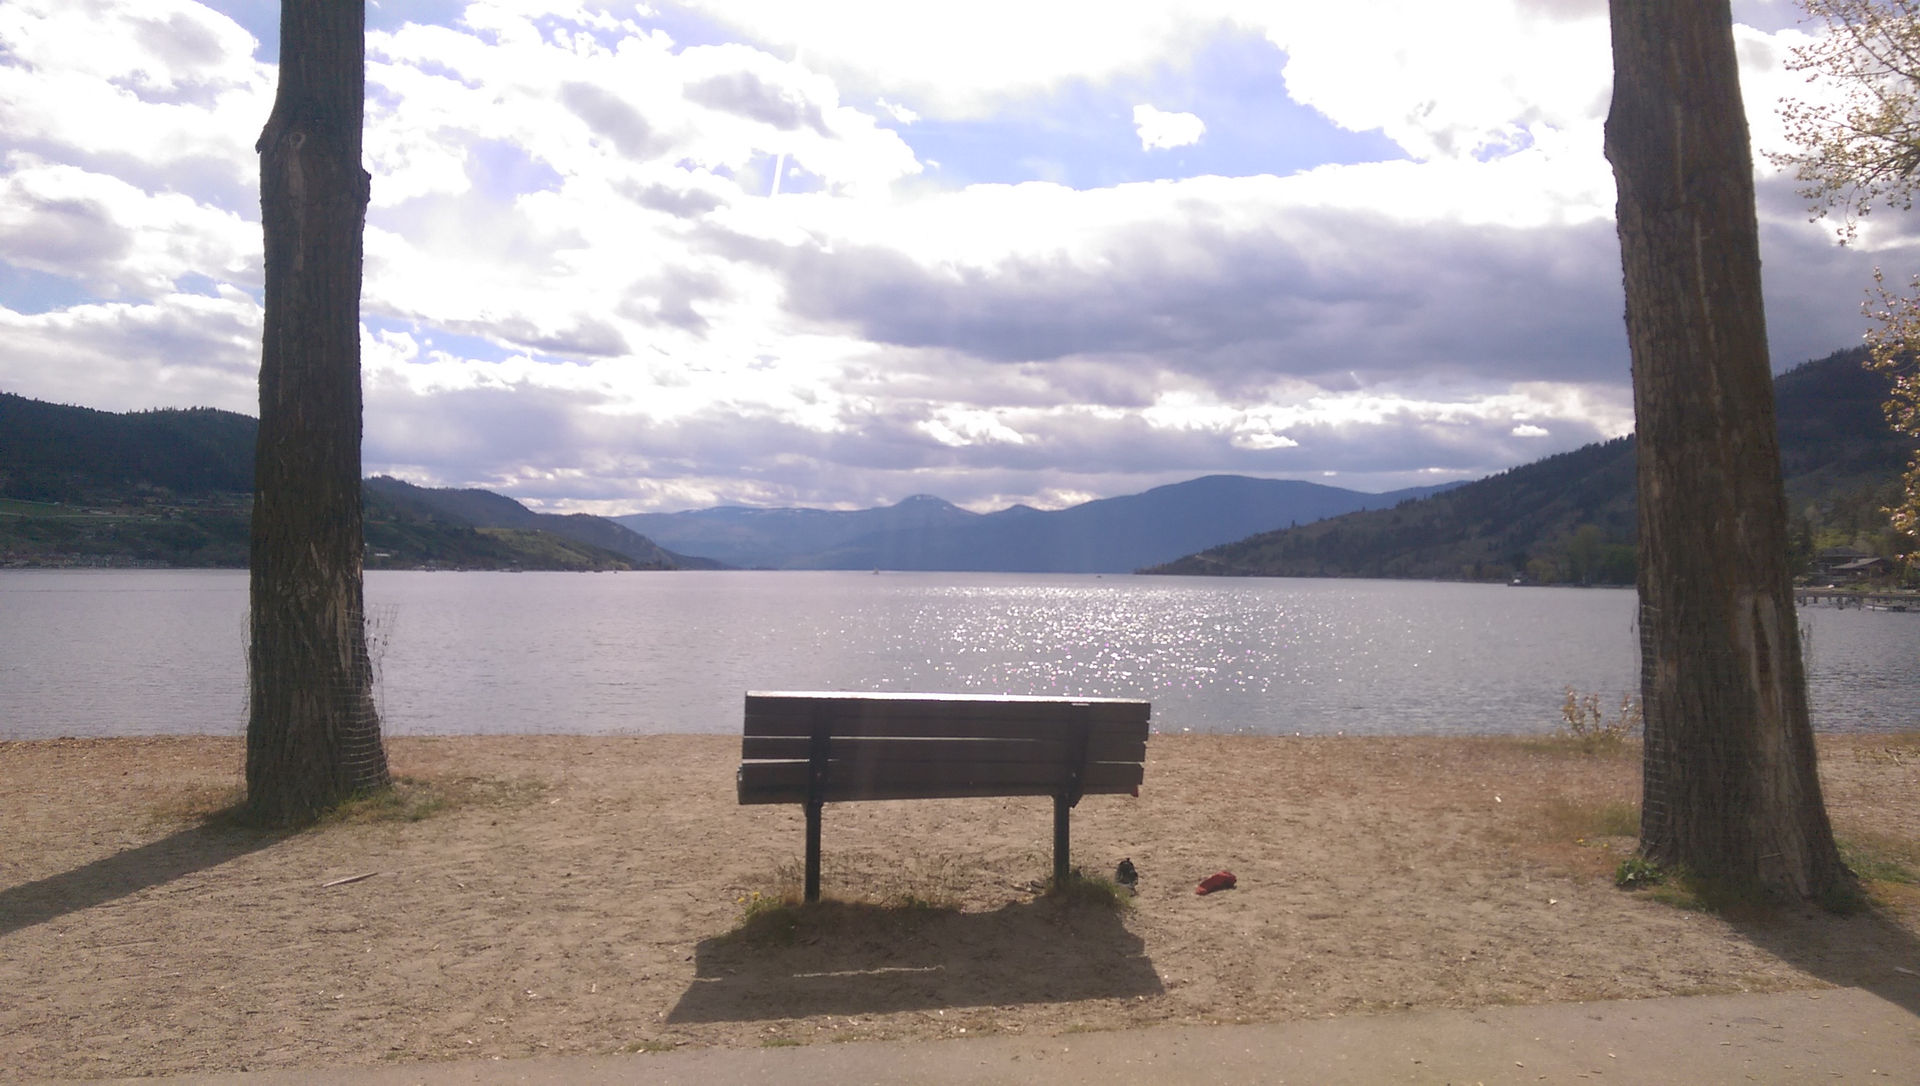 Lakeside bench